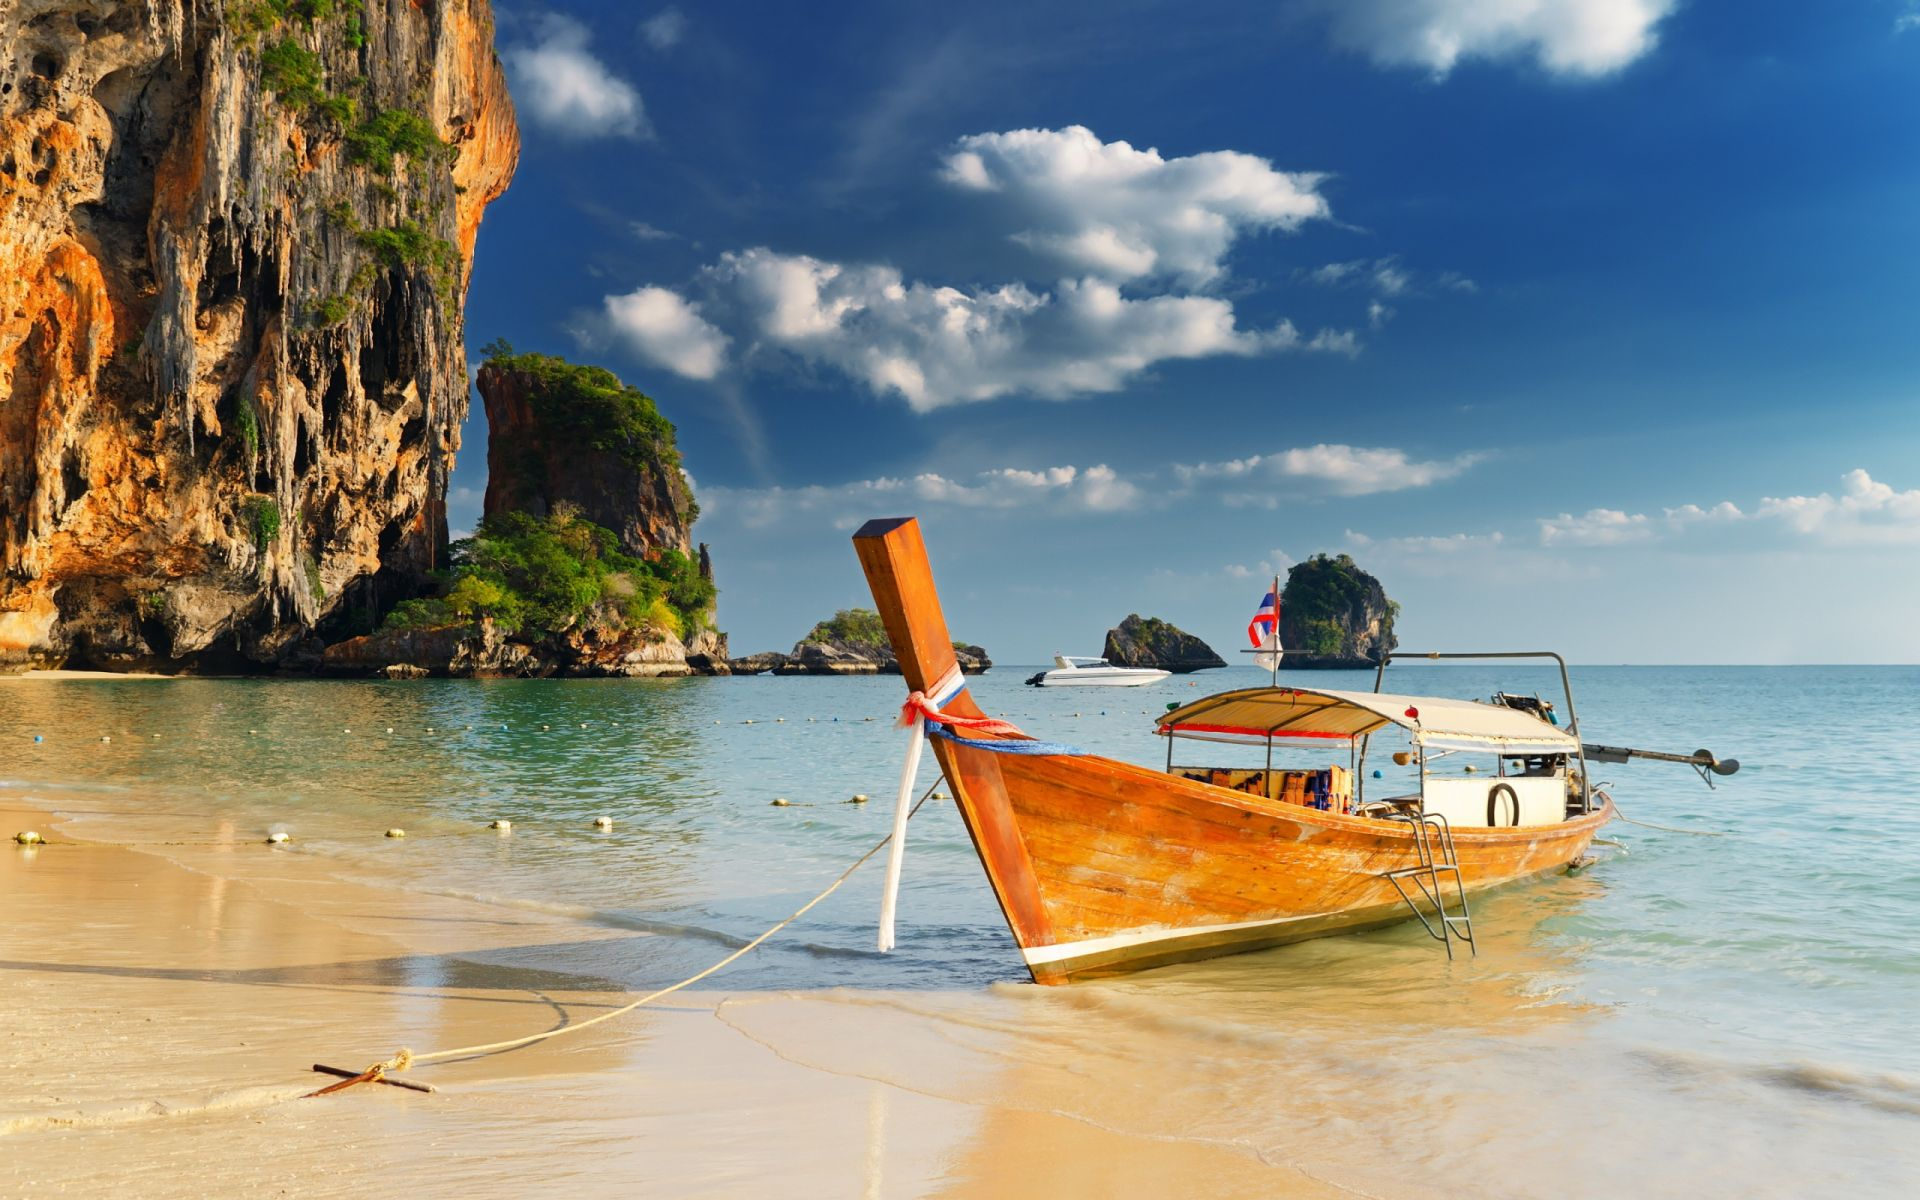 nature beach with boat, beautiful blue sky